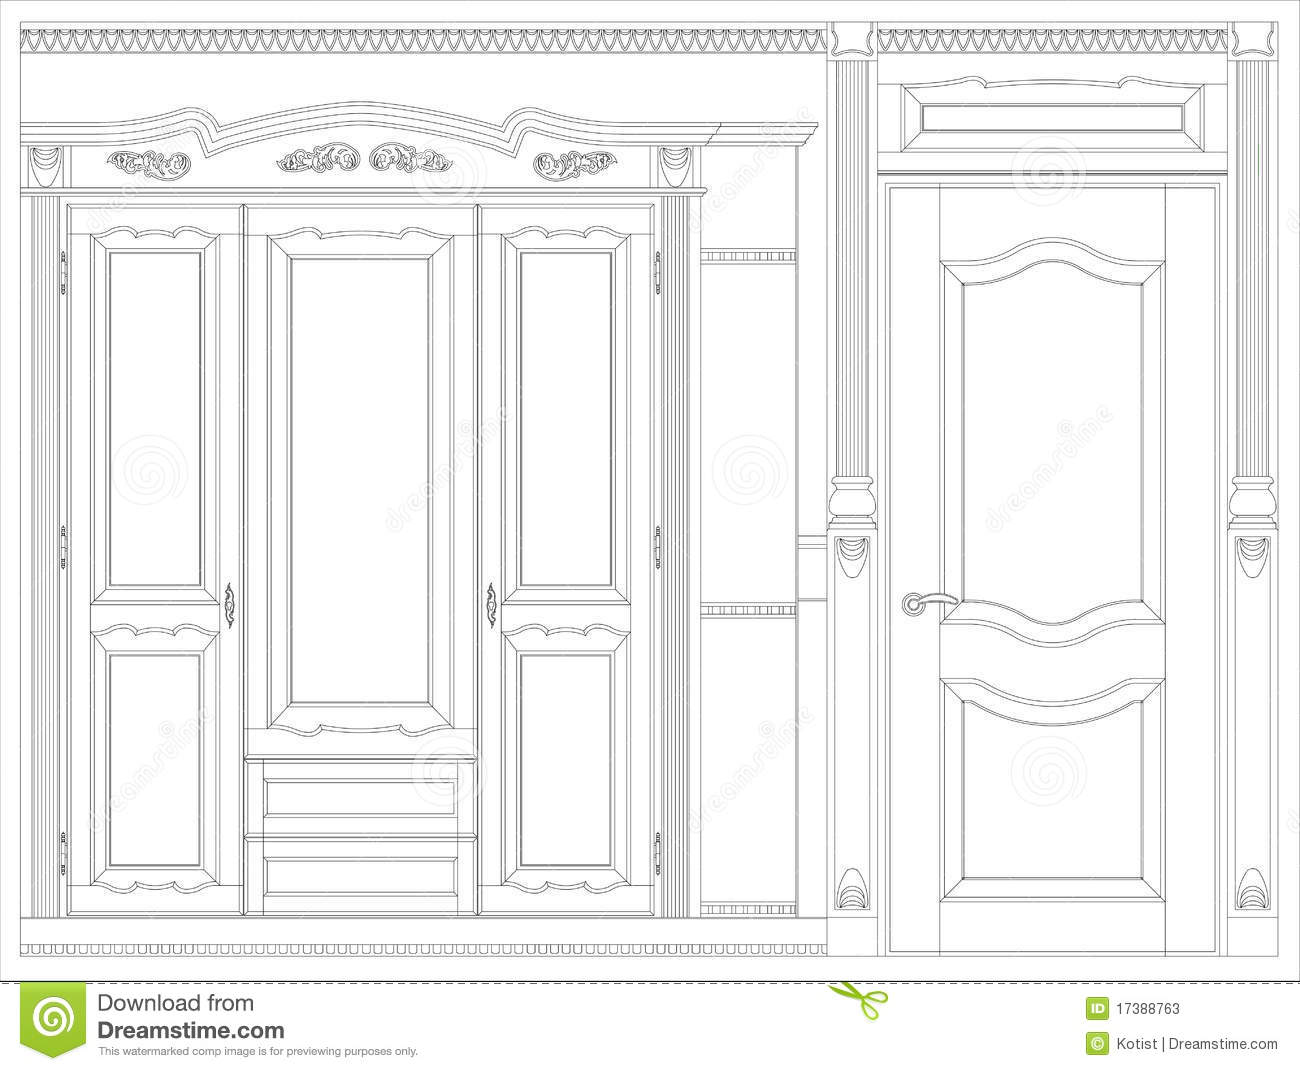 Wood furniture blueprint stock illustration illustration of wood furniture blueprint malvernweather